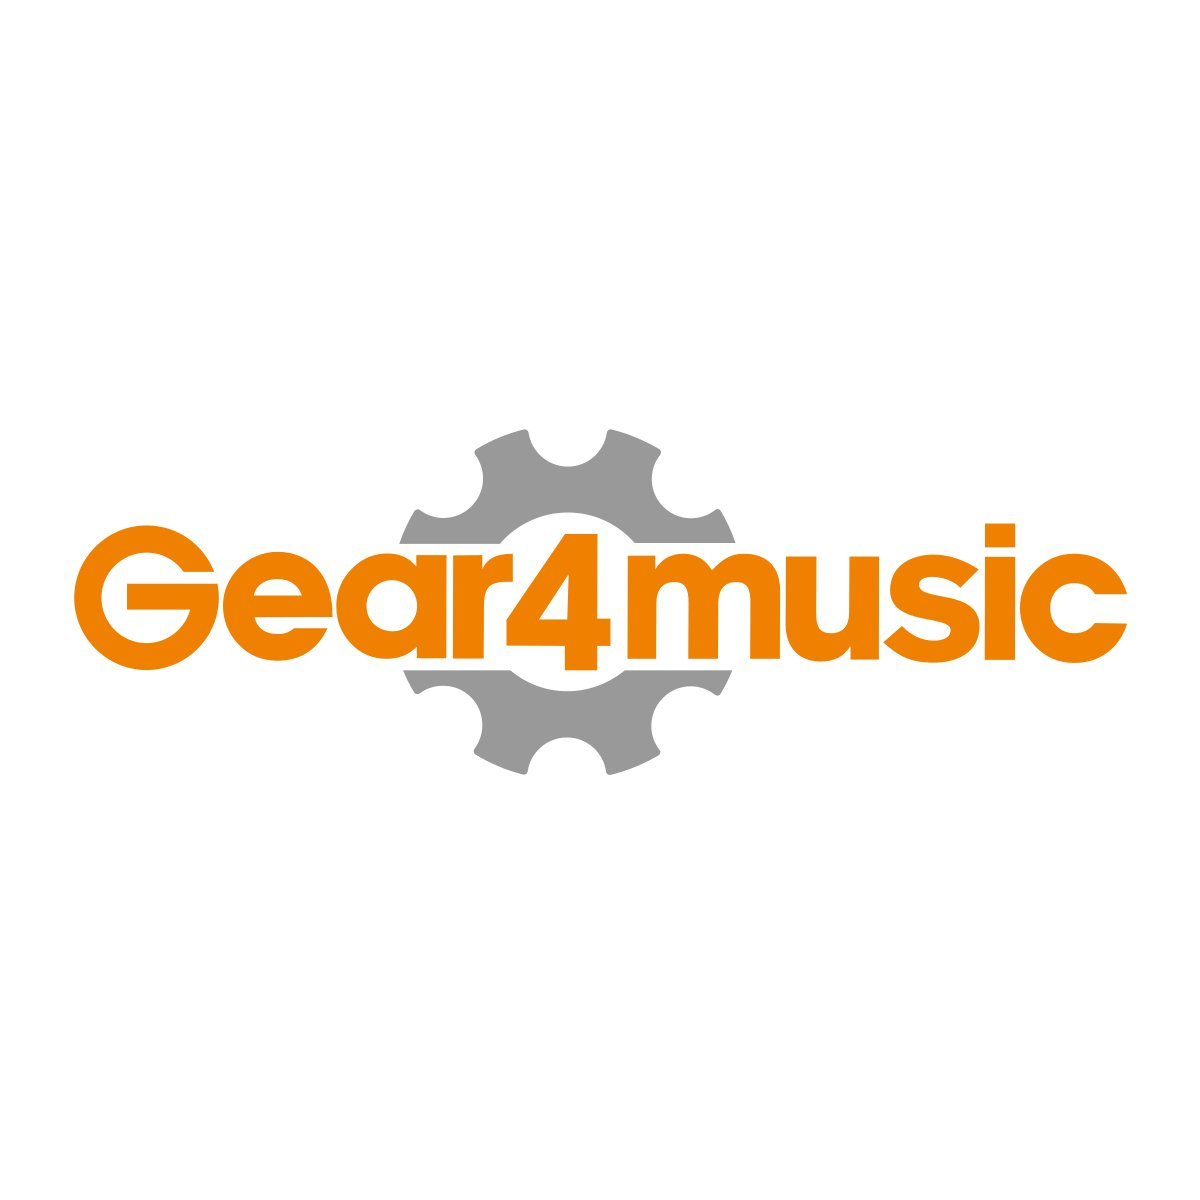 Piano Digital DP-10X de Gear4music + Pack de Accesorios - Palisandro